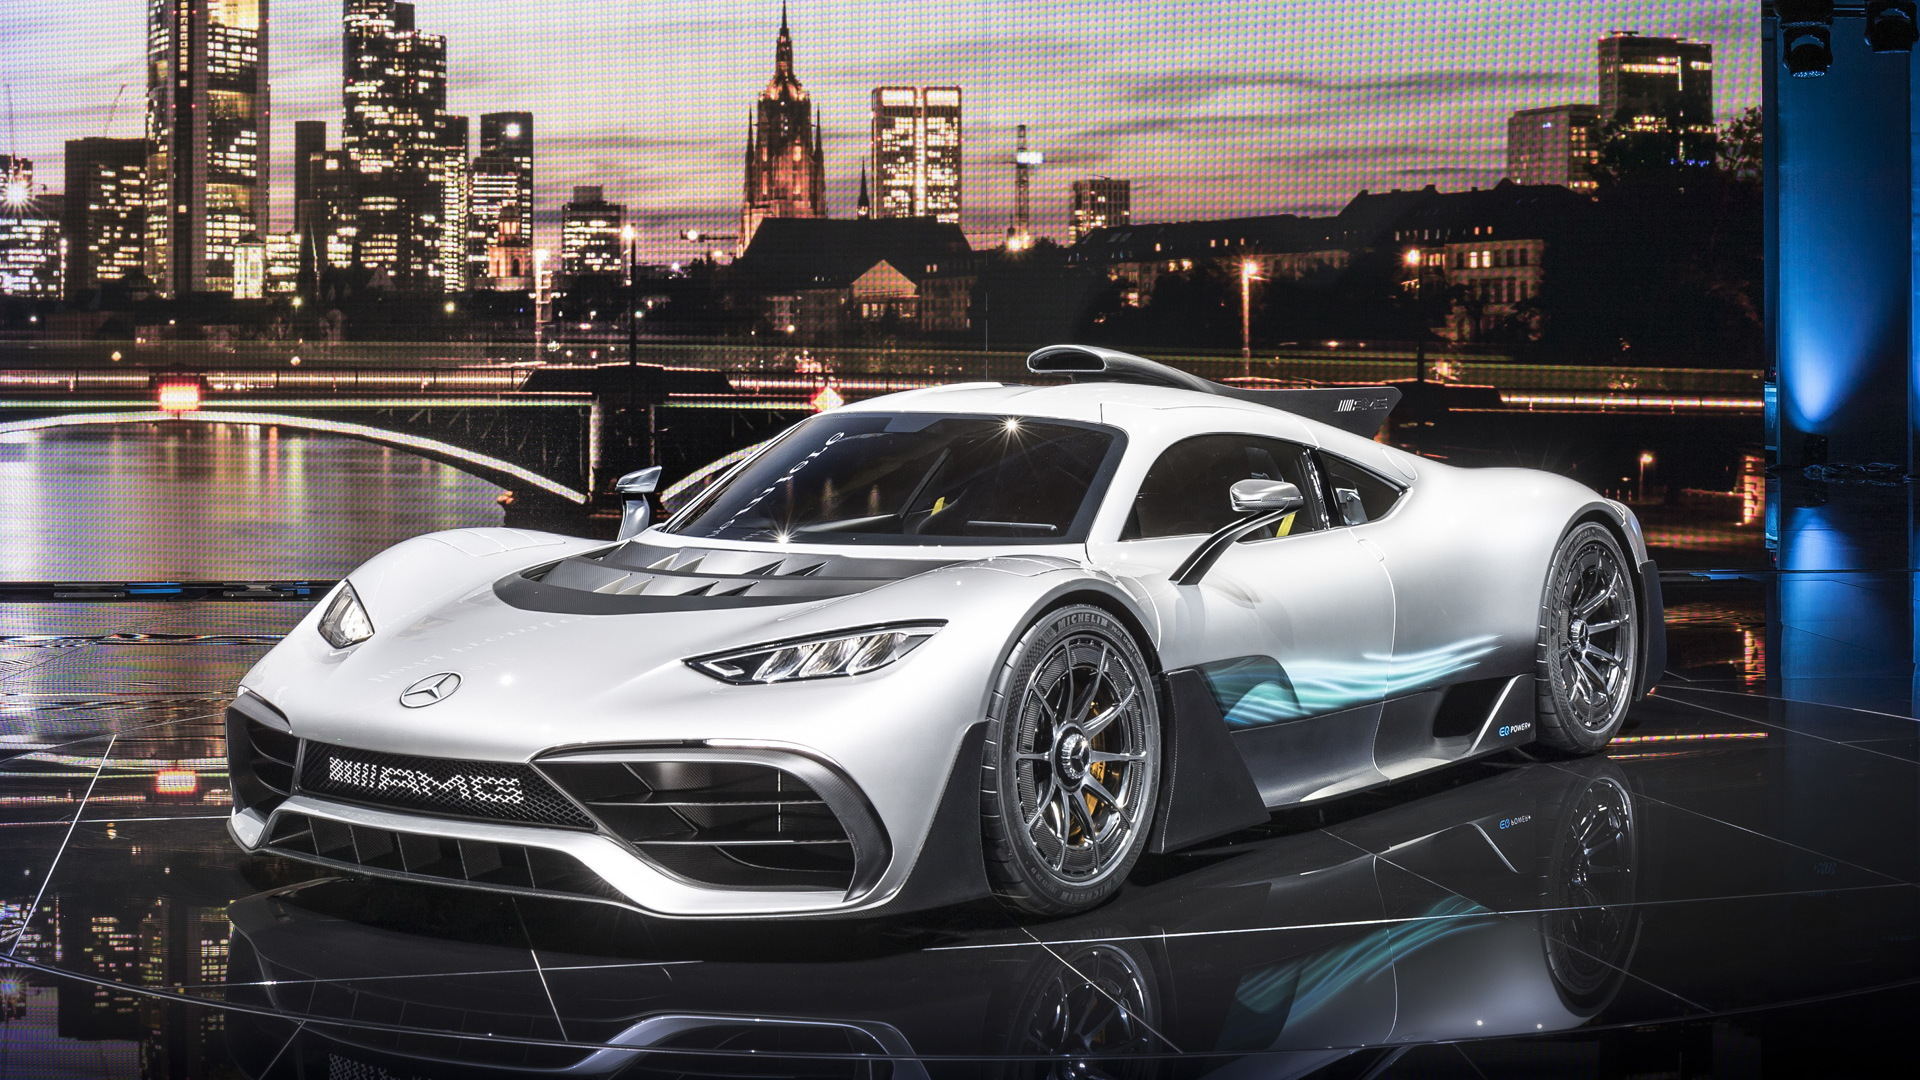 Mercedes-AMG Project One looks insane on the road